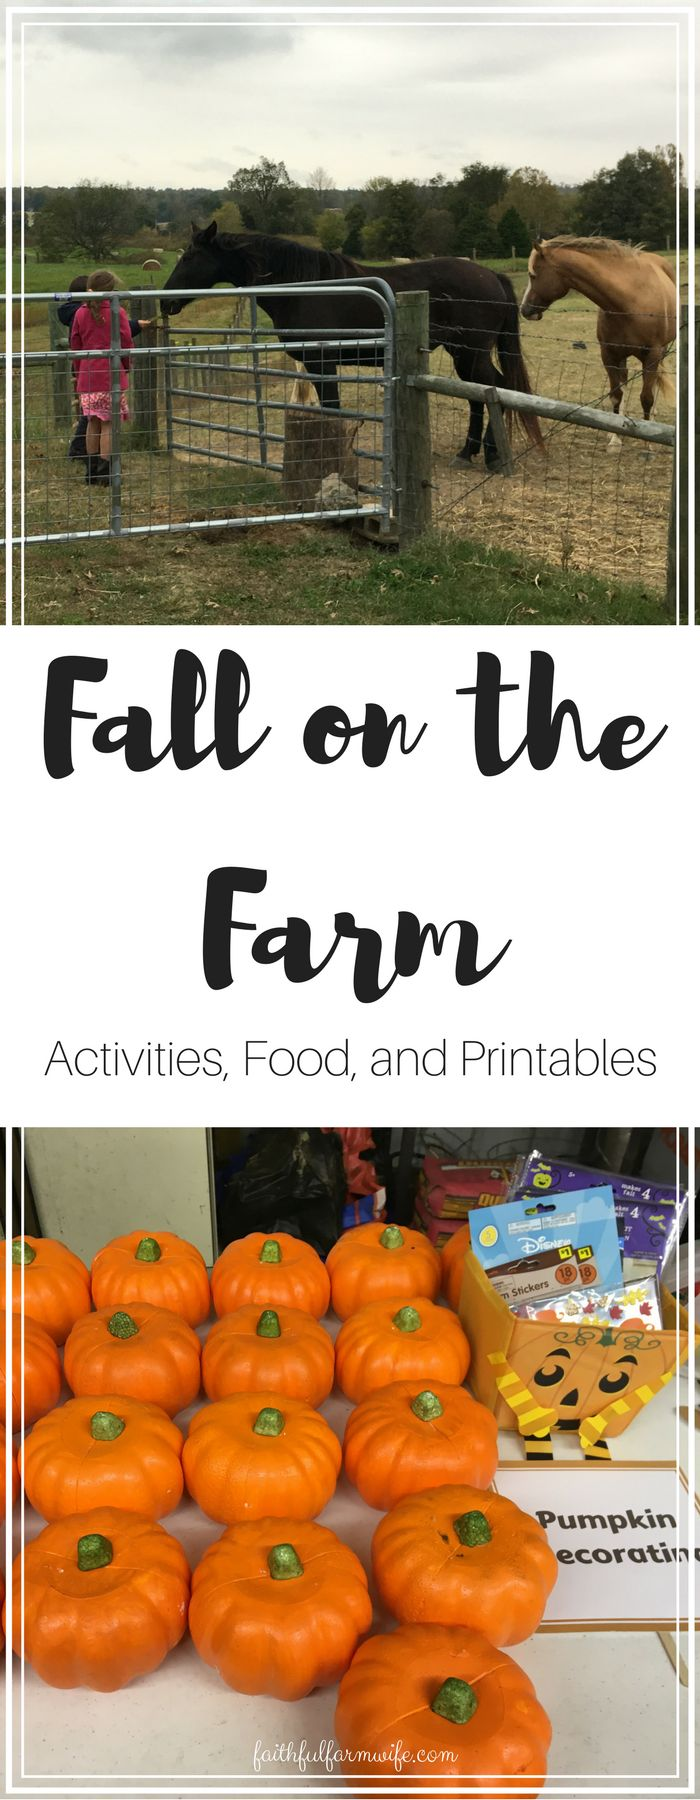 Are you hosting a fall farm fest this year? Glean ideas for activities, food, and decorations in this list that I put together from our last fall fest!